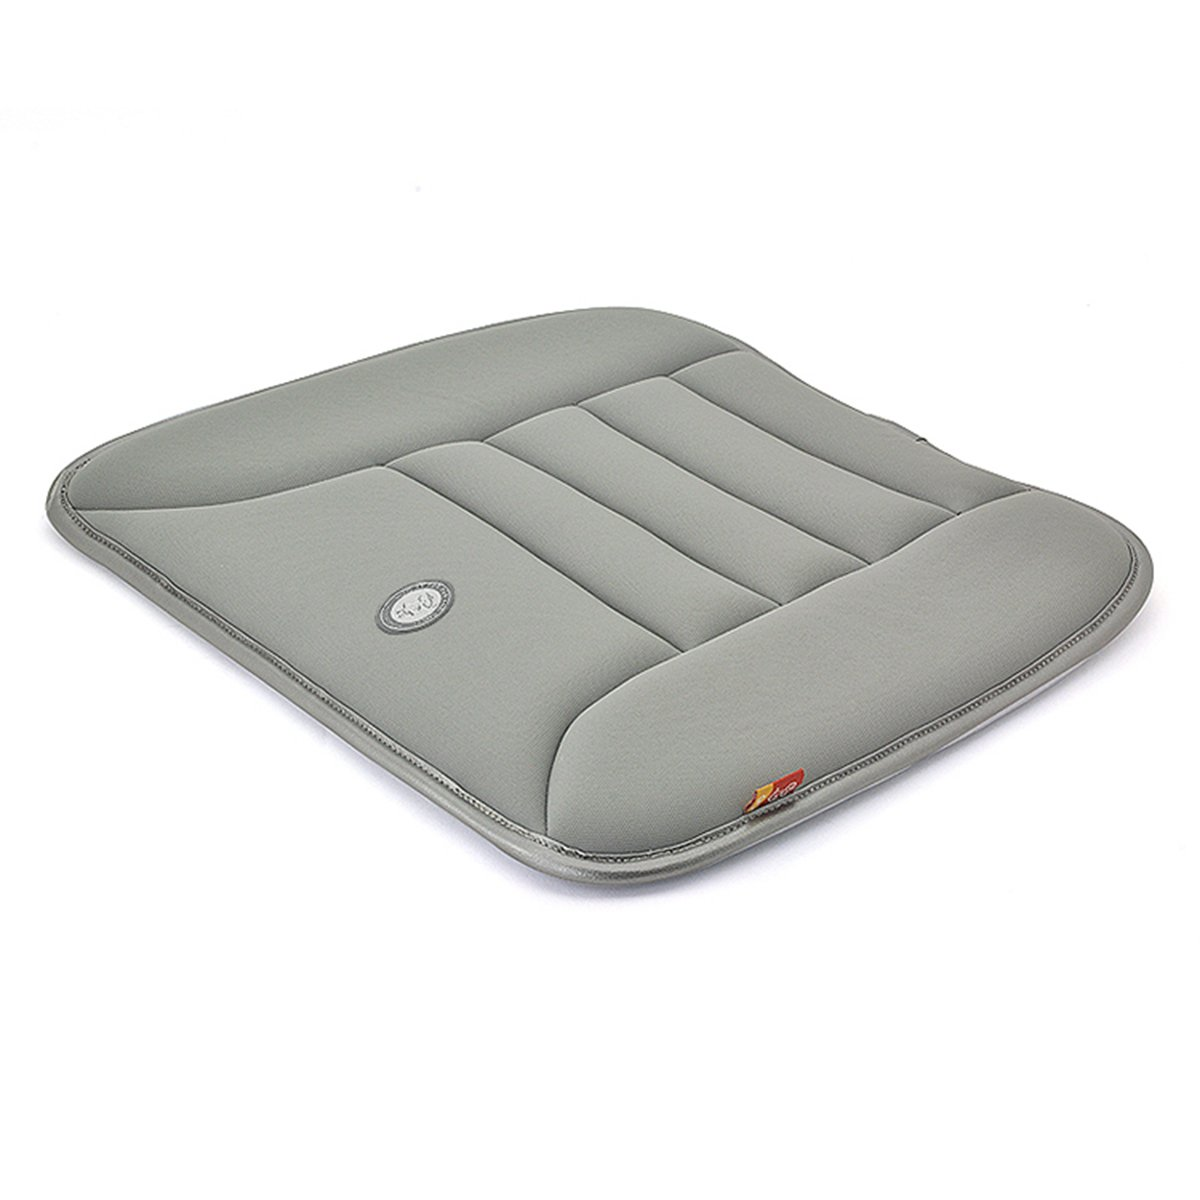 Travel Memory Foam Seat Cushion – One Step Install Seat Pad, Luxury Back Pillow for Car Home Office Airplane Wheel Chair – Gray